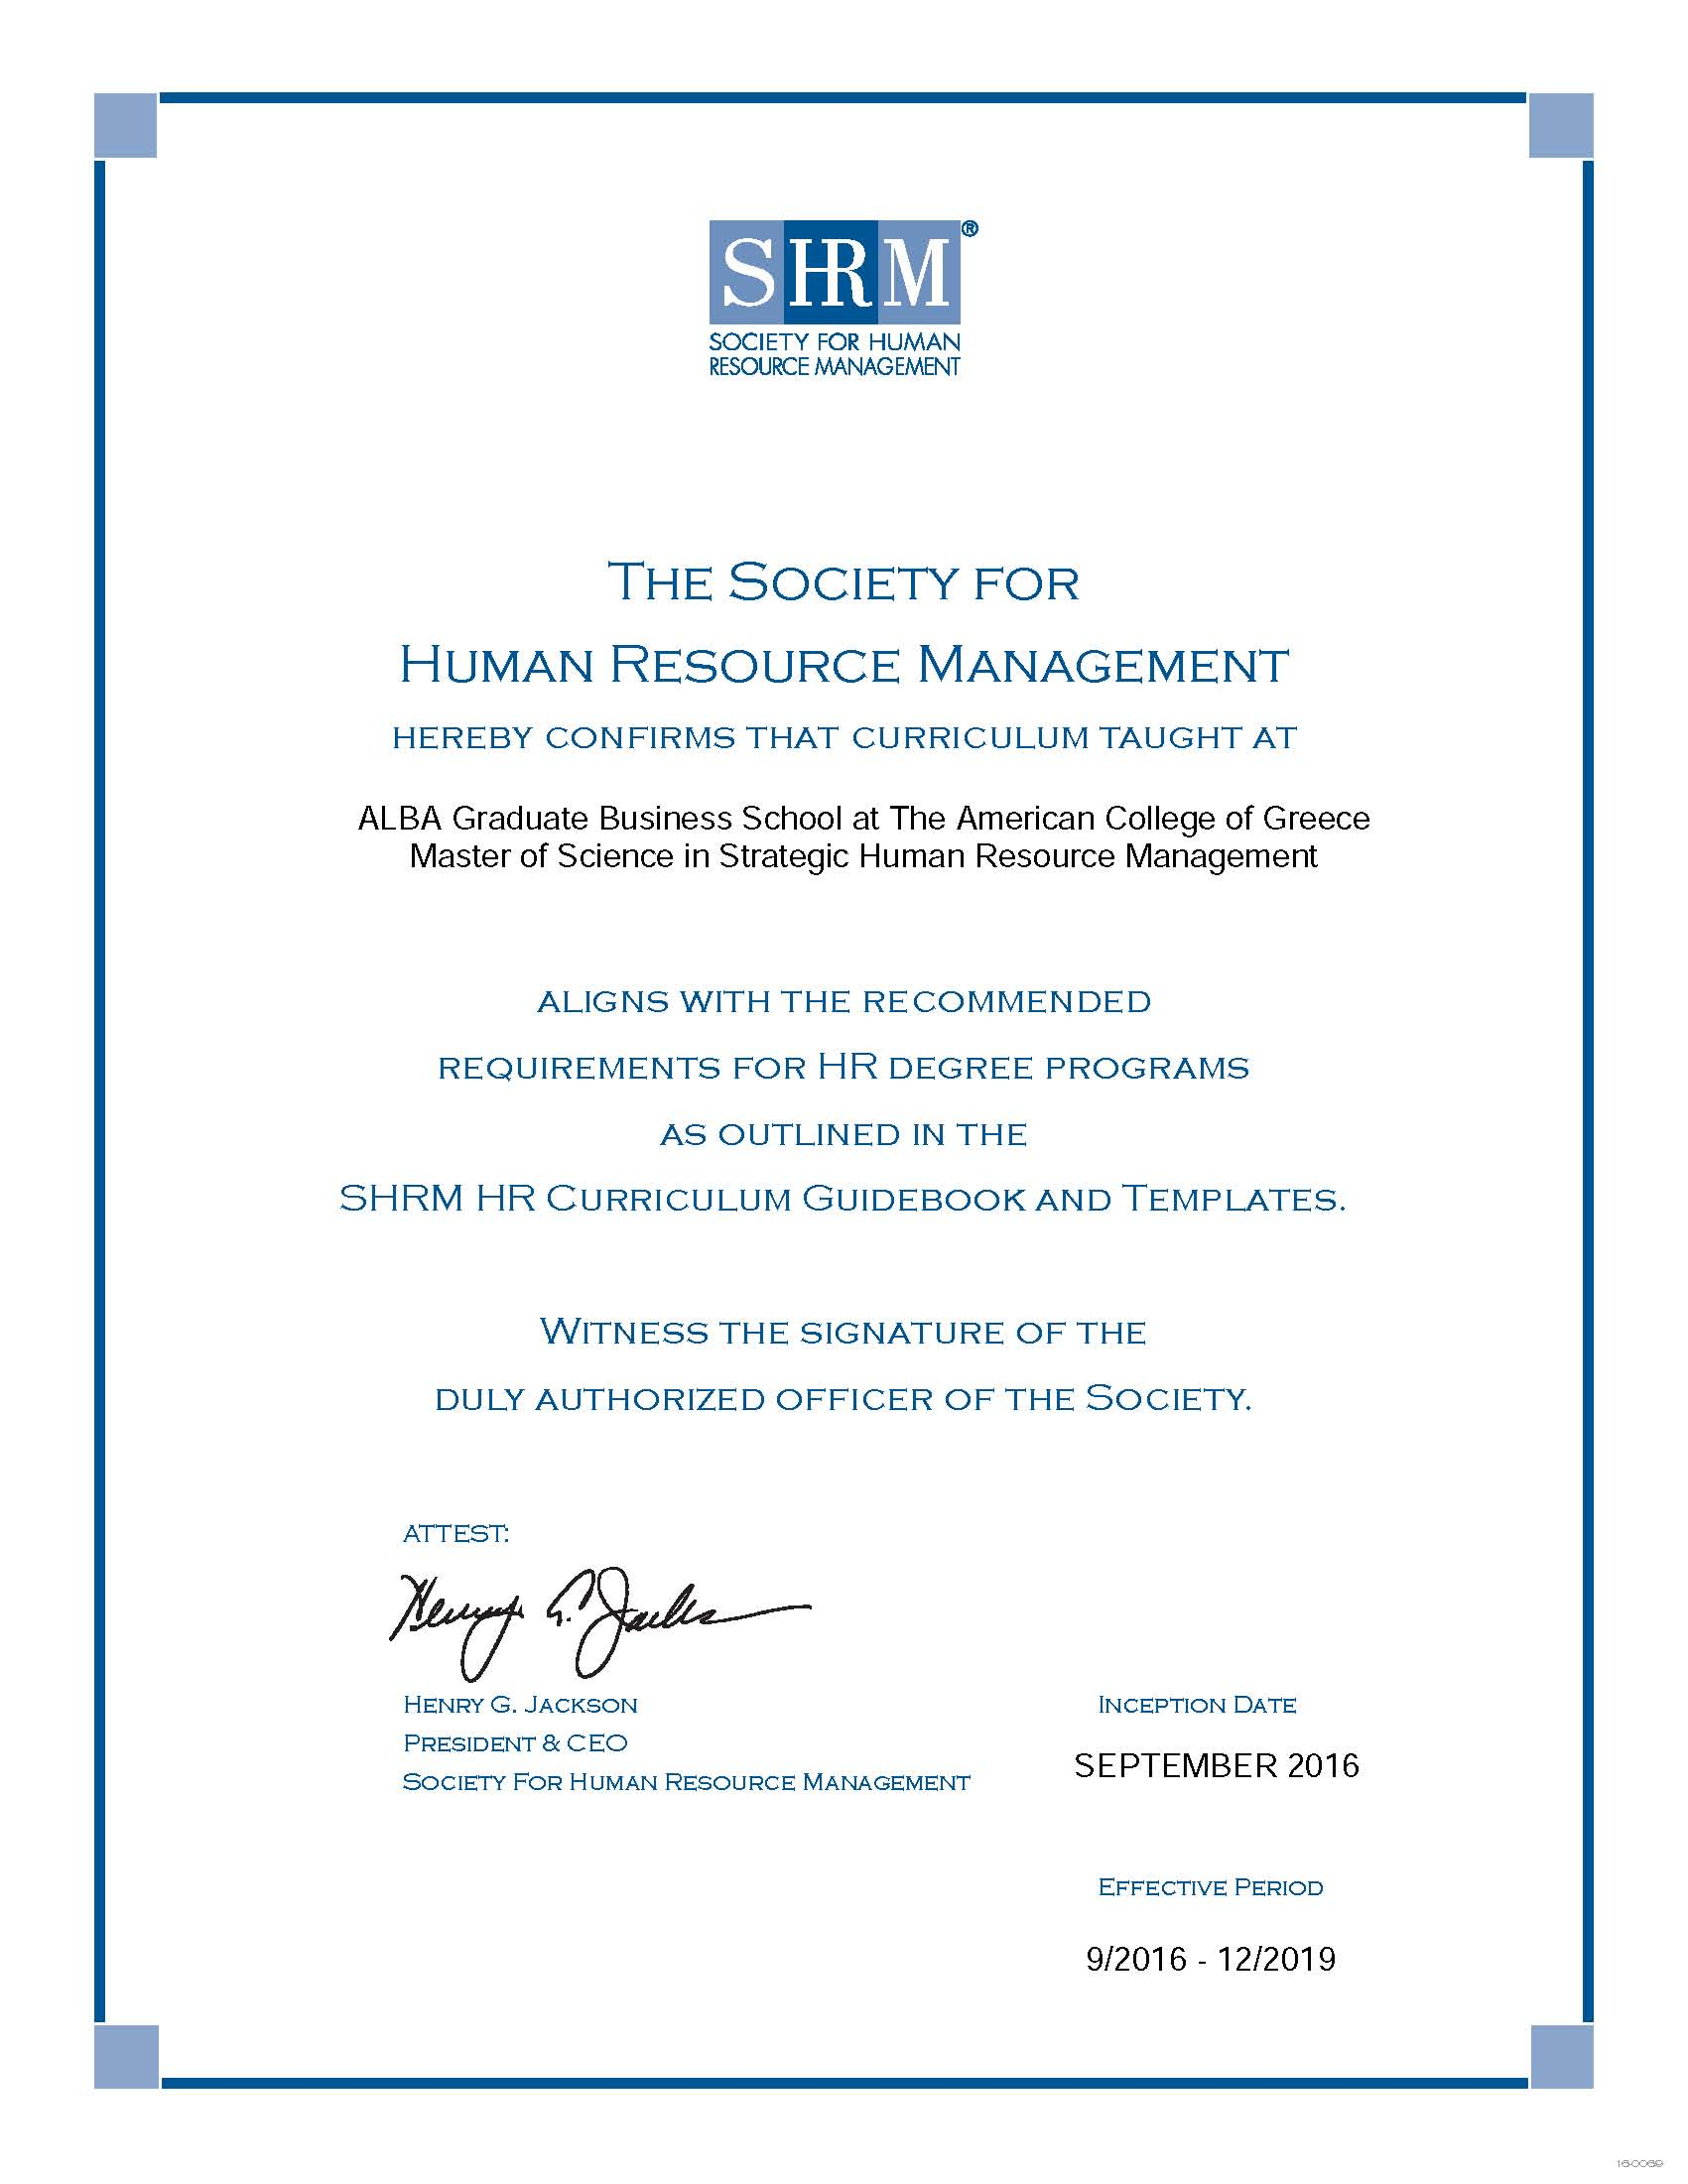 High Praise for the MSc in Strategic Human Resource ...